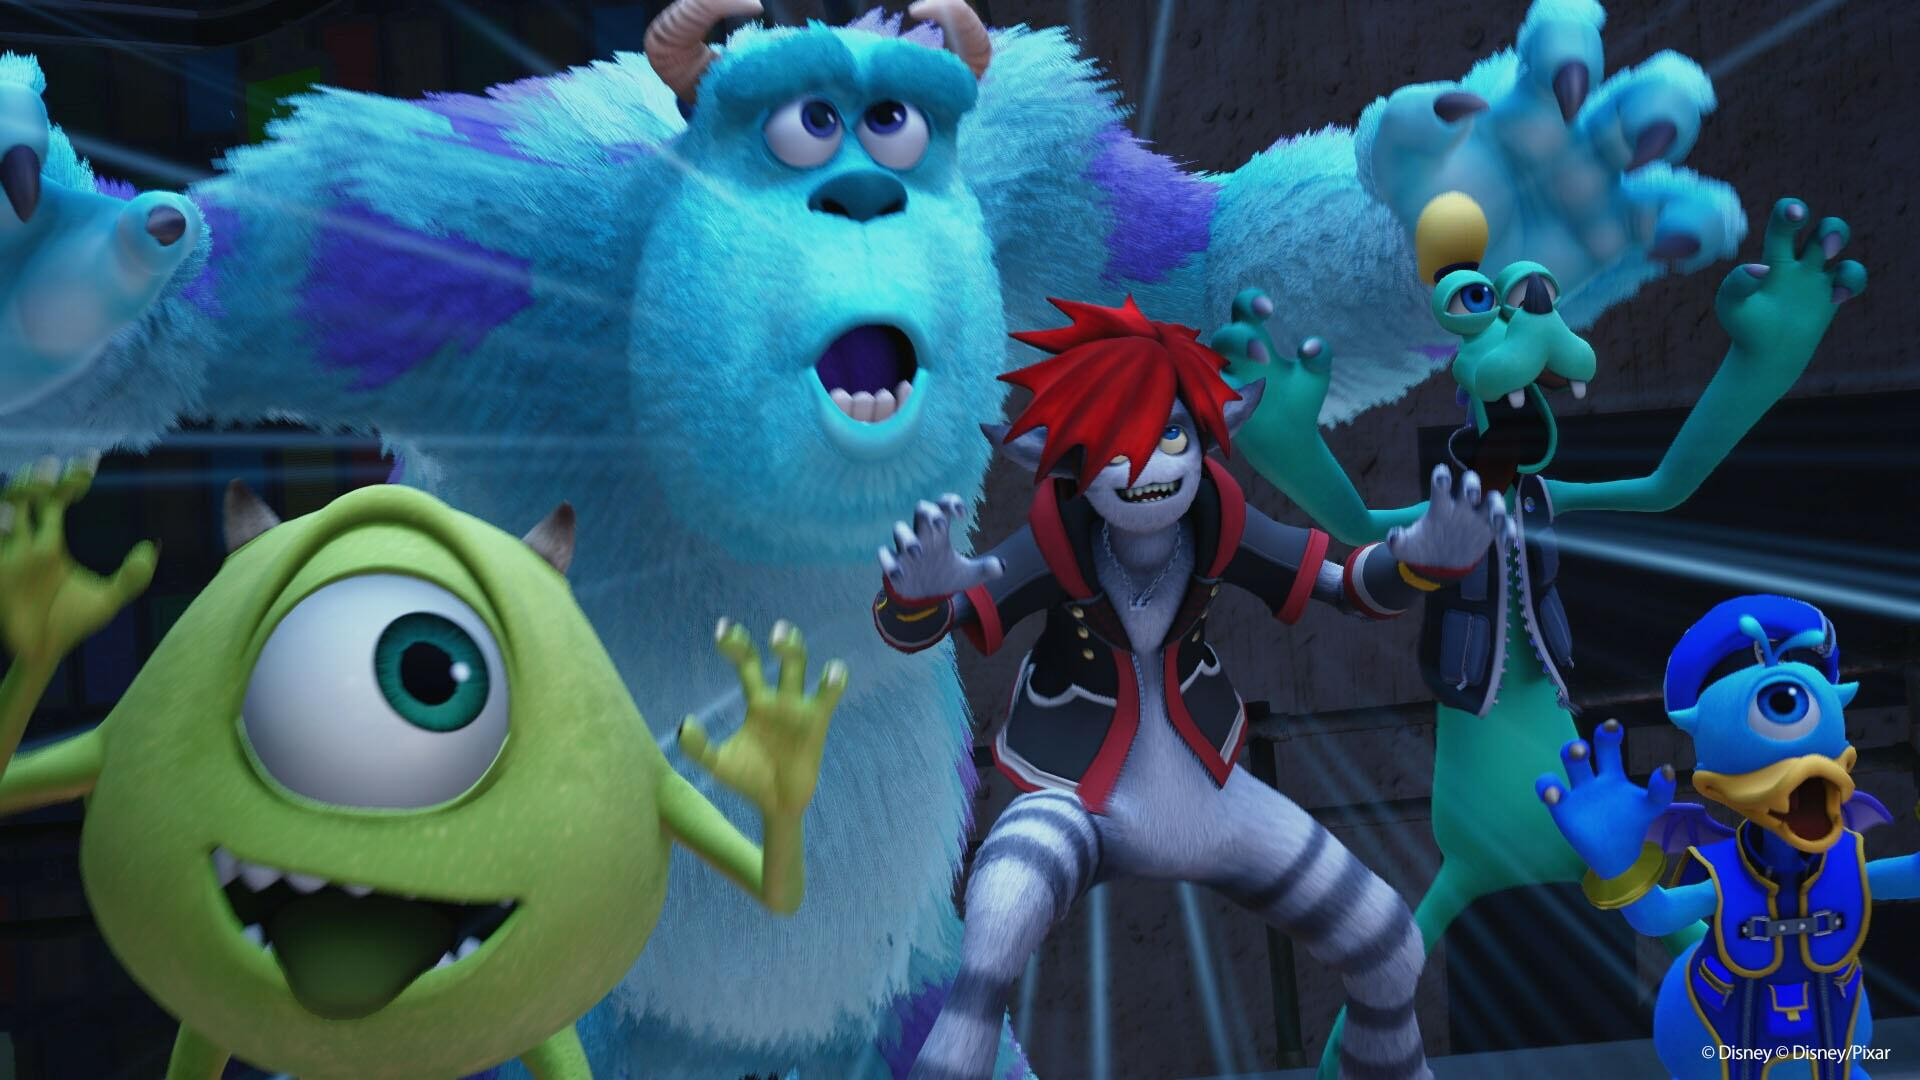 Kingdom Hearts 3's Re:Mind DLC Will Have New Difficulty Options